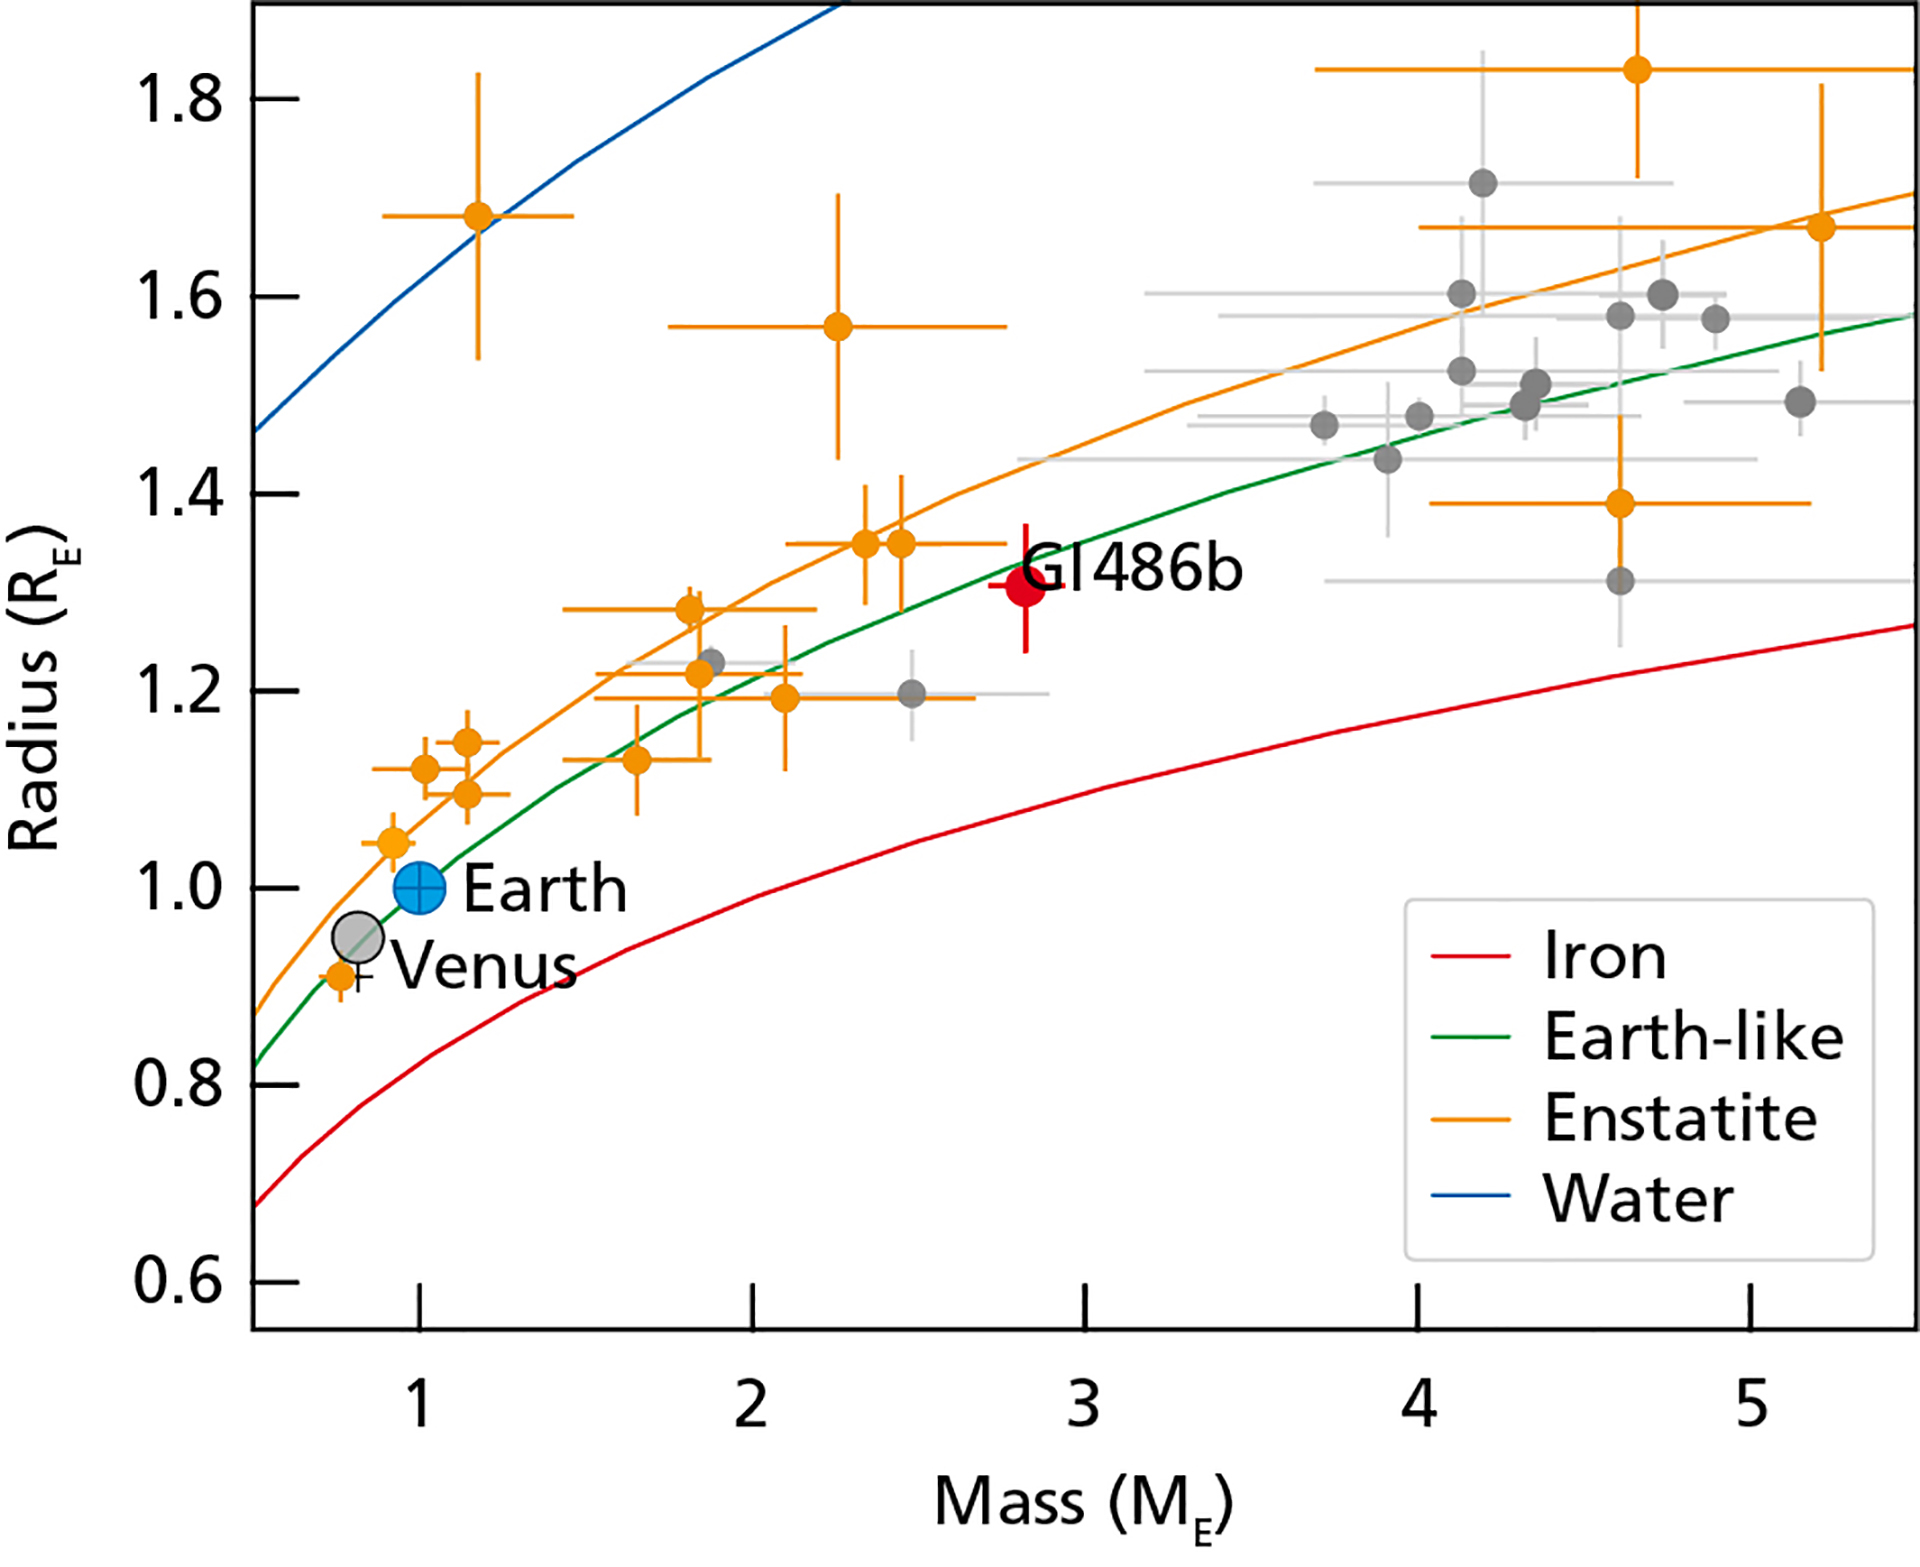 The diagram provides an estimate of the interior compositions of selected exoplanets based on their masses and radii in Earth units. The red dot represents Gliese 486b, and the orange symbols represent planets around cool stars like Gliese 486. The gray dots show planets housed by hotter stars. The color curves indicate the theoretical mass radius relationships for pure water at 700 K (blue), for the mineral enstatite (orange), for Earth (green), and pure iron (red). By comparison, the diagram also highlights Venus and Earth. Credit: Trifonov et al./ MPIA Graphics Department.